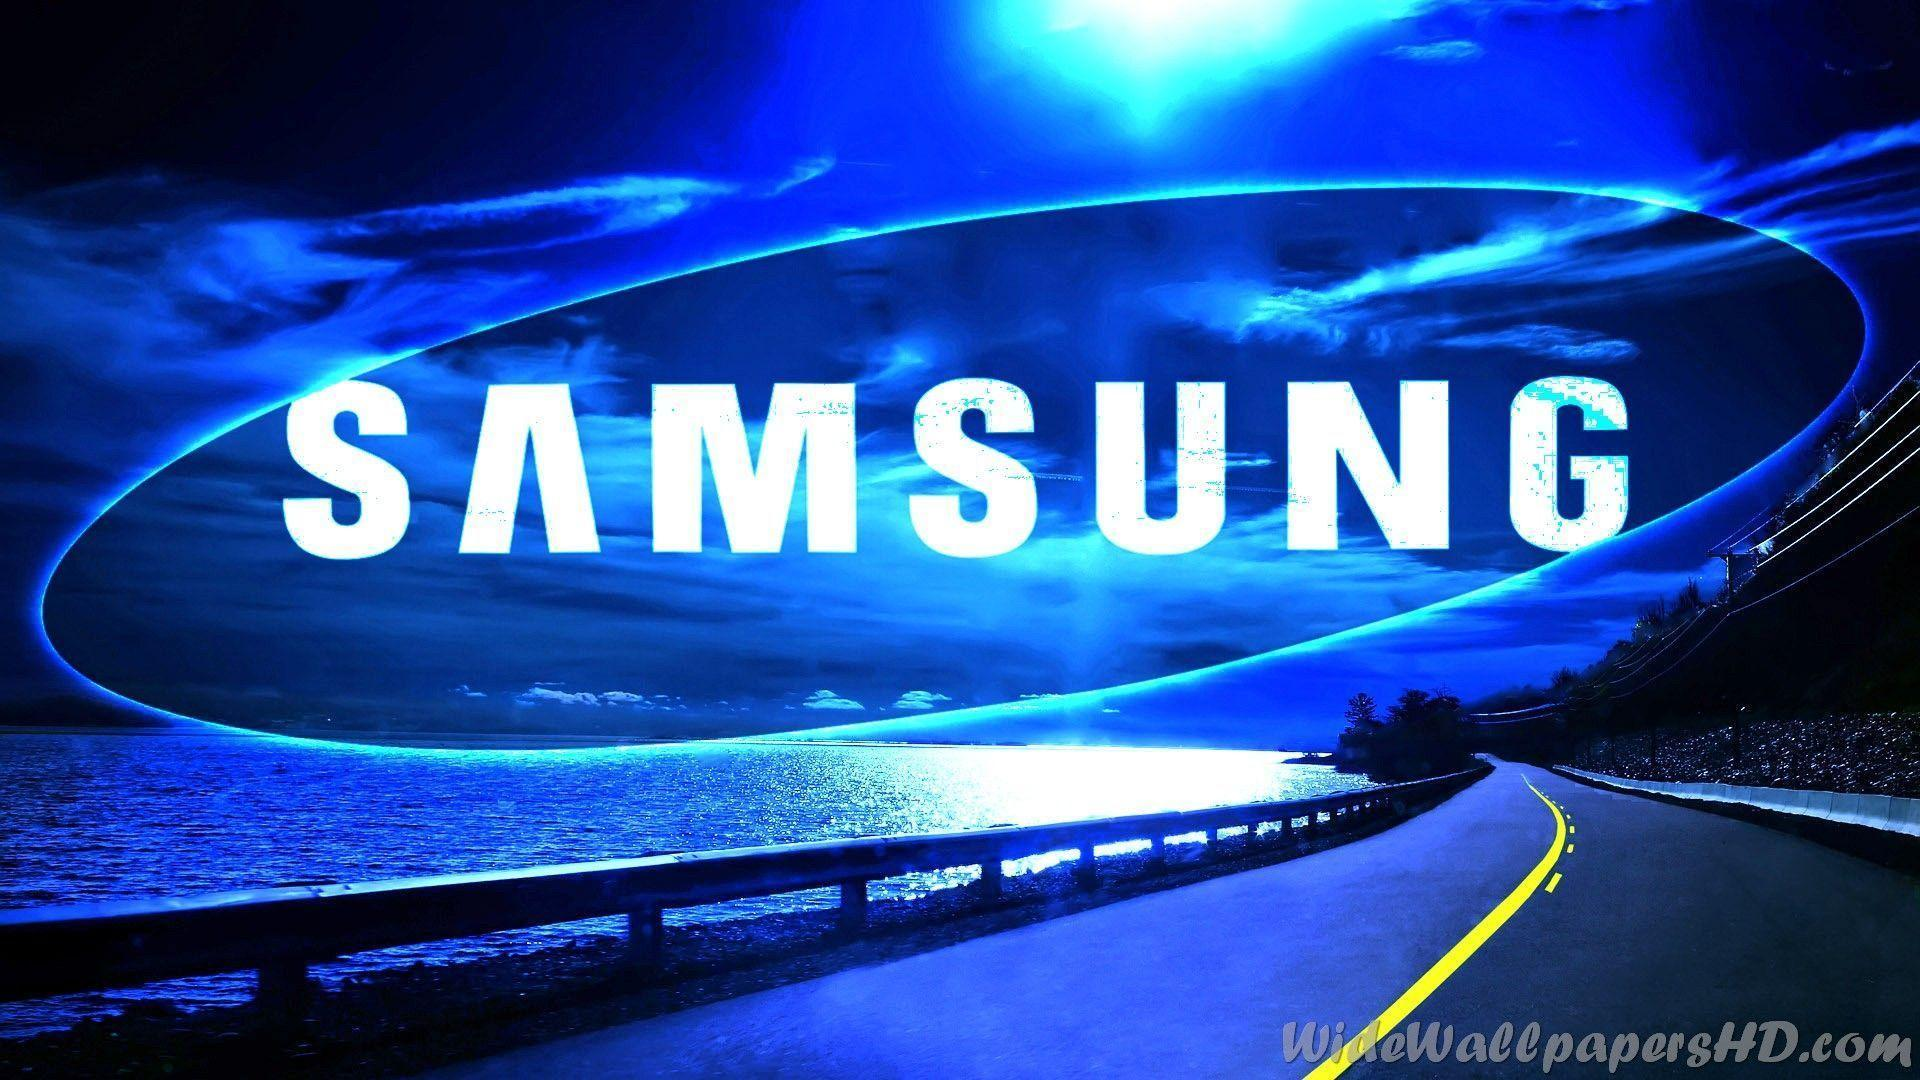 Samsung Wallpaper Hd Photo